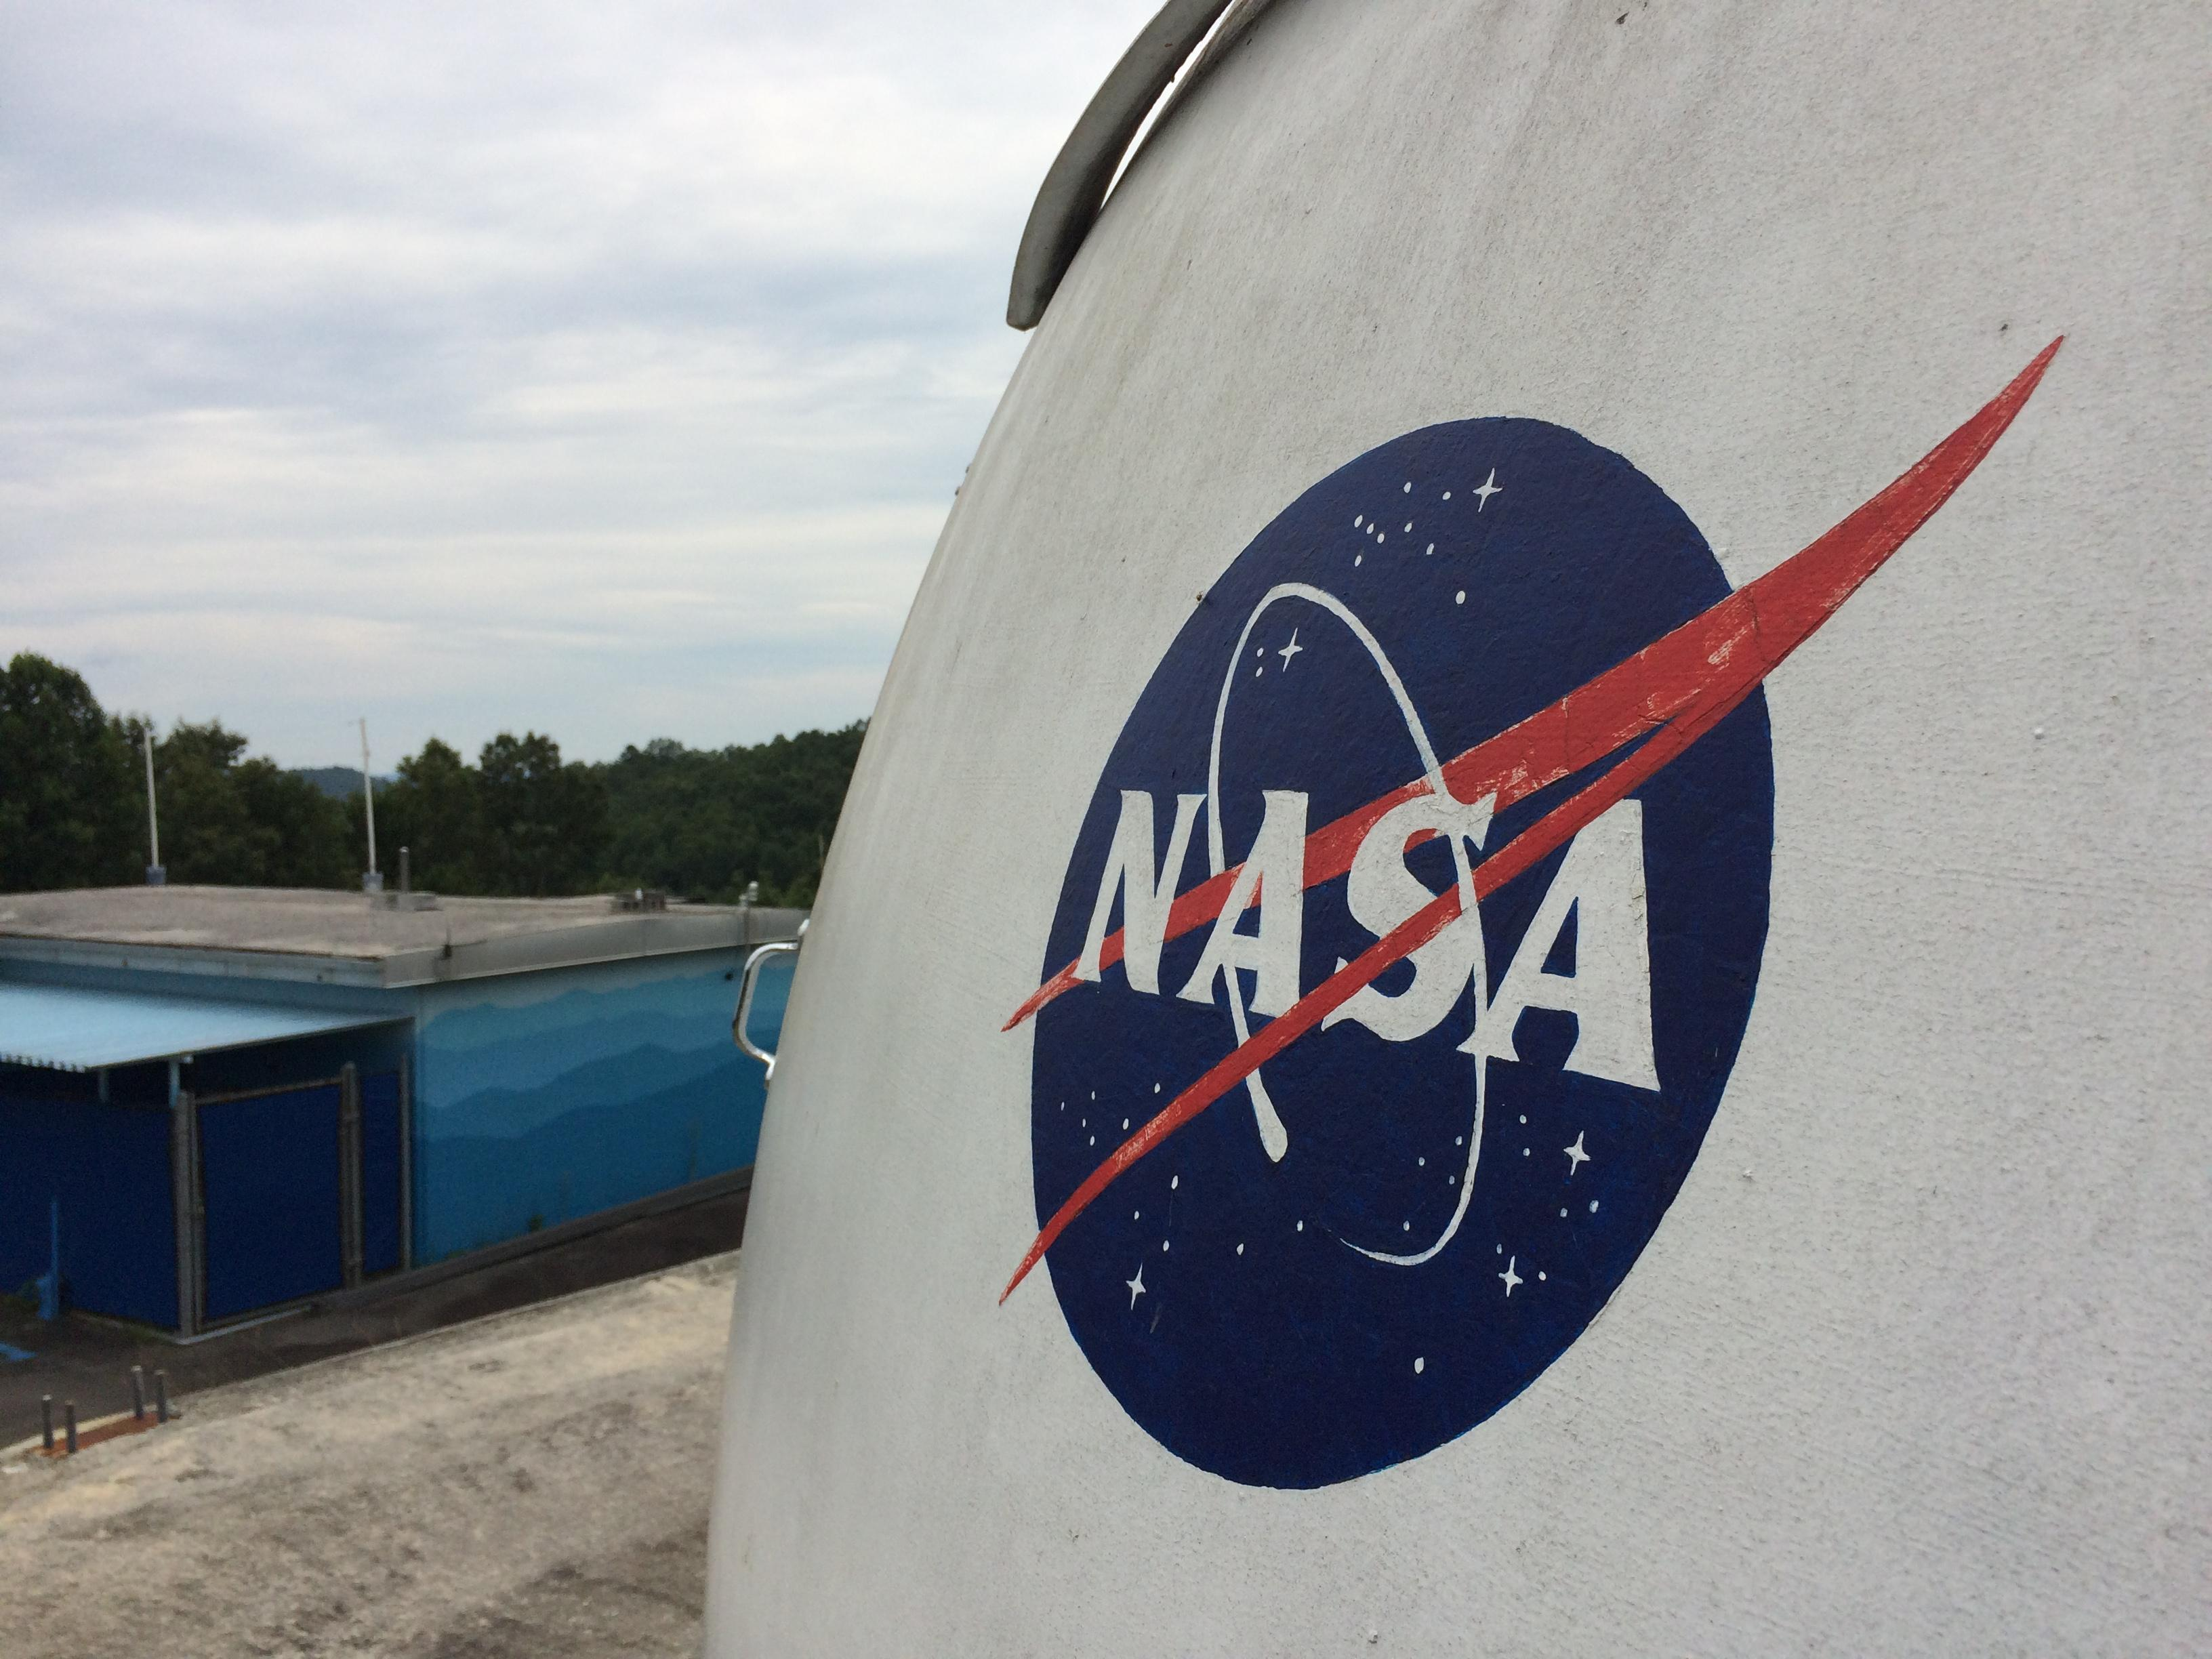 P.A.R.I. was originally a NASA site, established in the early 1960's. (Photo credit: WLOS Staff)